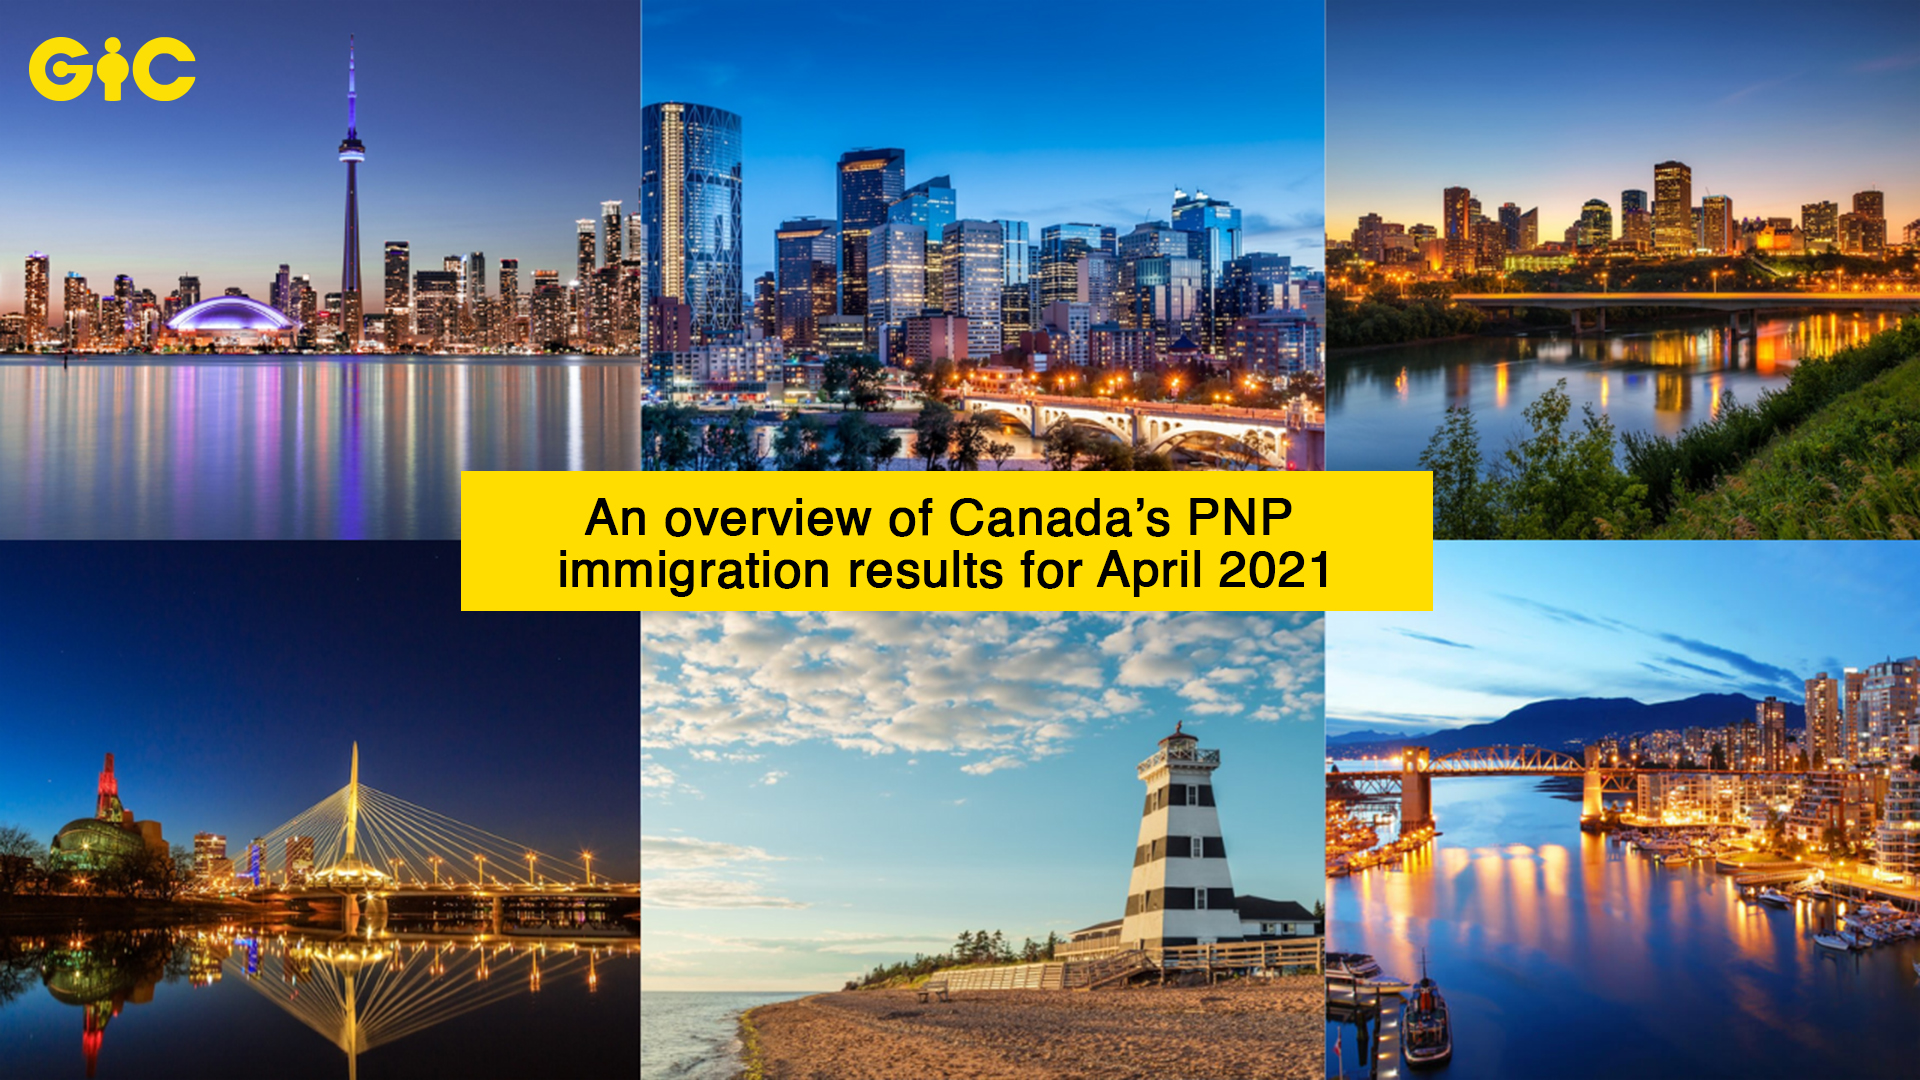 An overview of Canada's PNP immigration results for April 2021